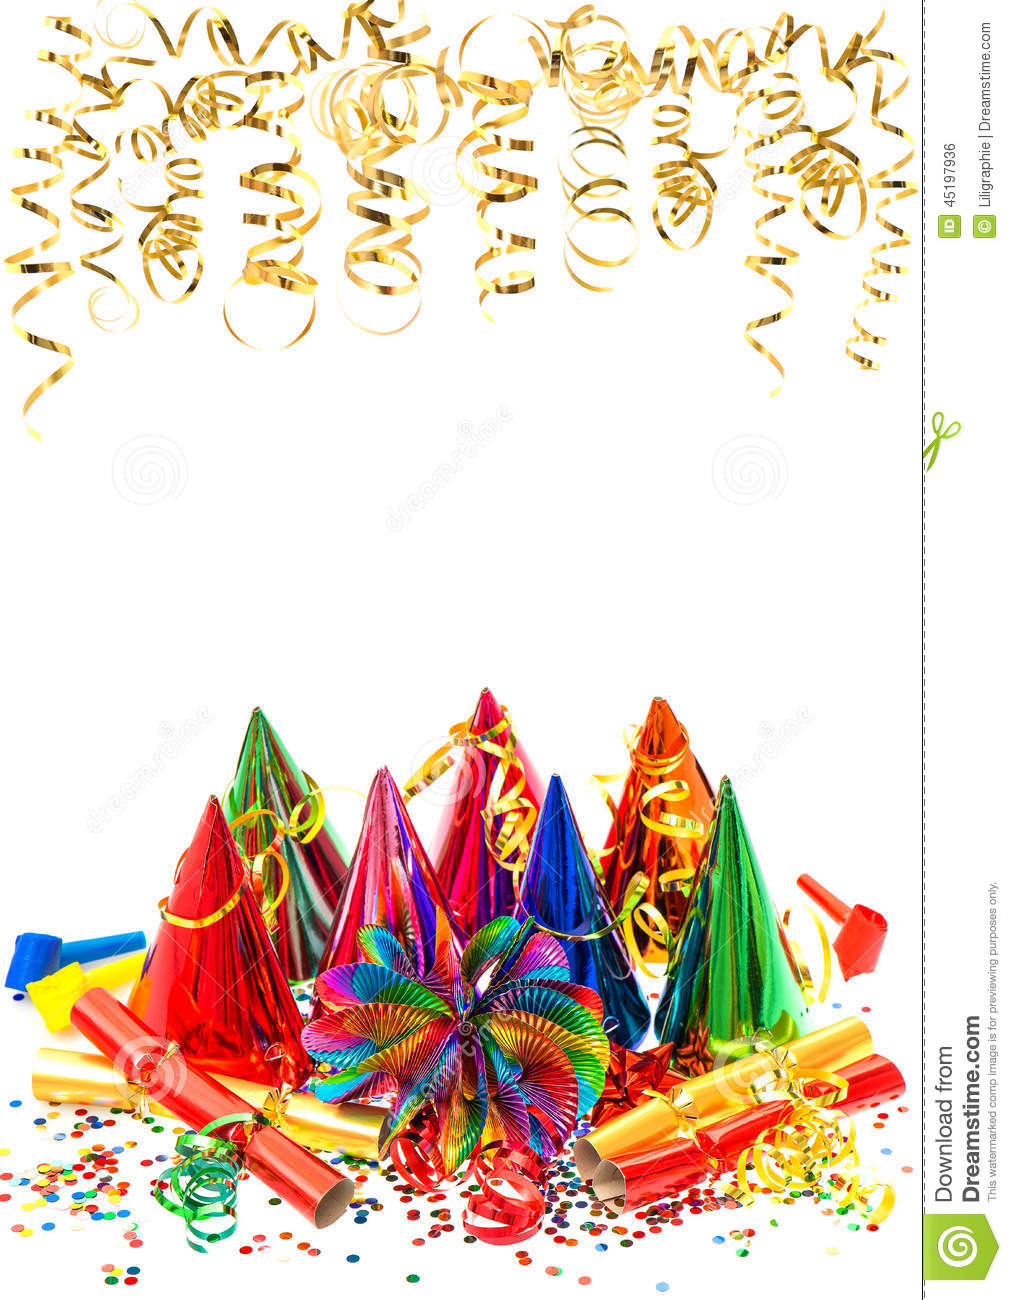 Carnival party decoration garlands streamer and confetti for Decoration carnaval